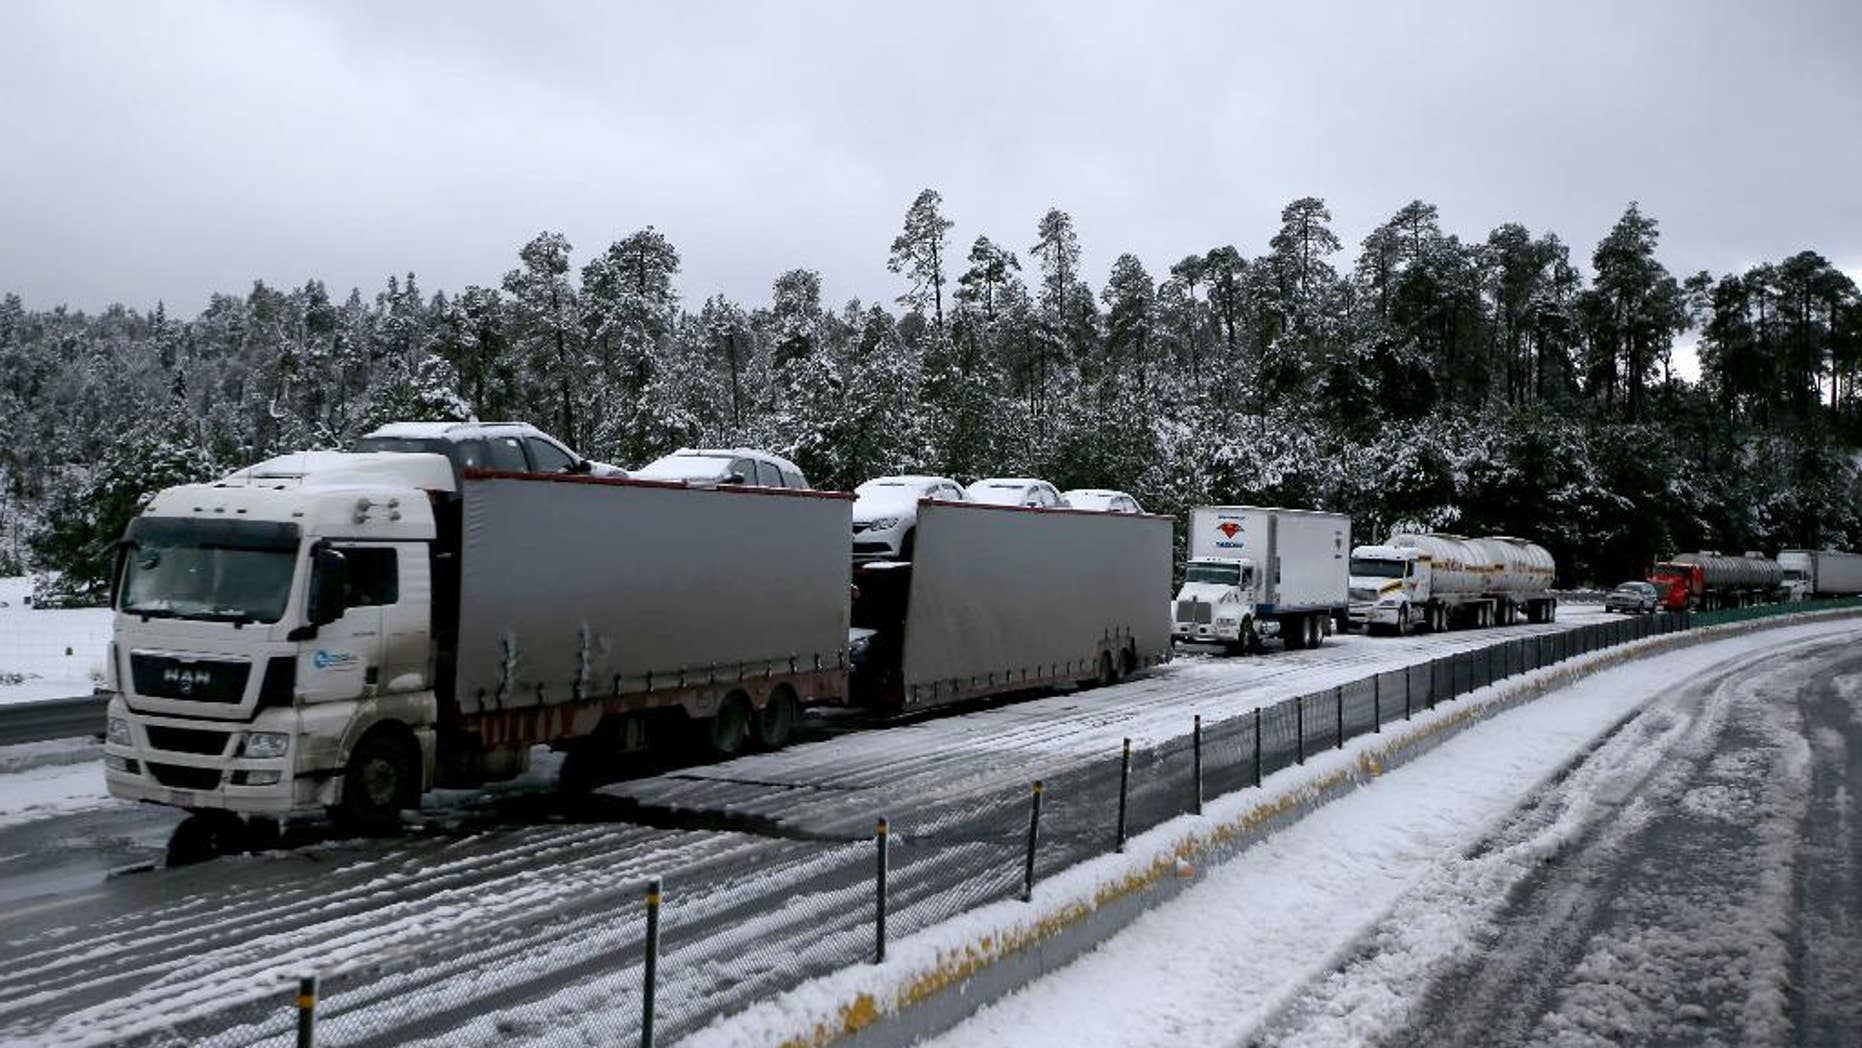 Traffic stands still due to snow, in Rio Frio, Mexico, Thursday, March 12, 2015. One of the main access roads to the city of Mexico was closed on Thursday after a snowstorm in the mountainous area east of the capital which reached unusual levels. (AP Photo)